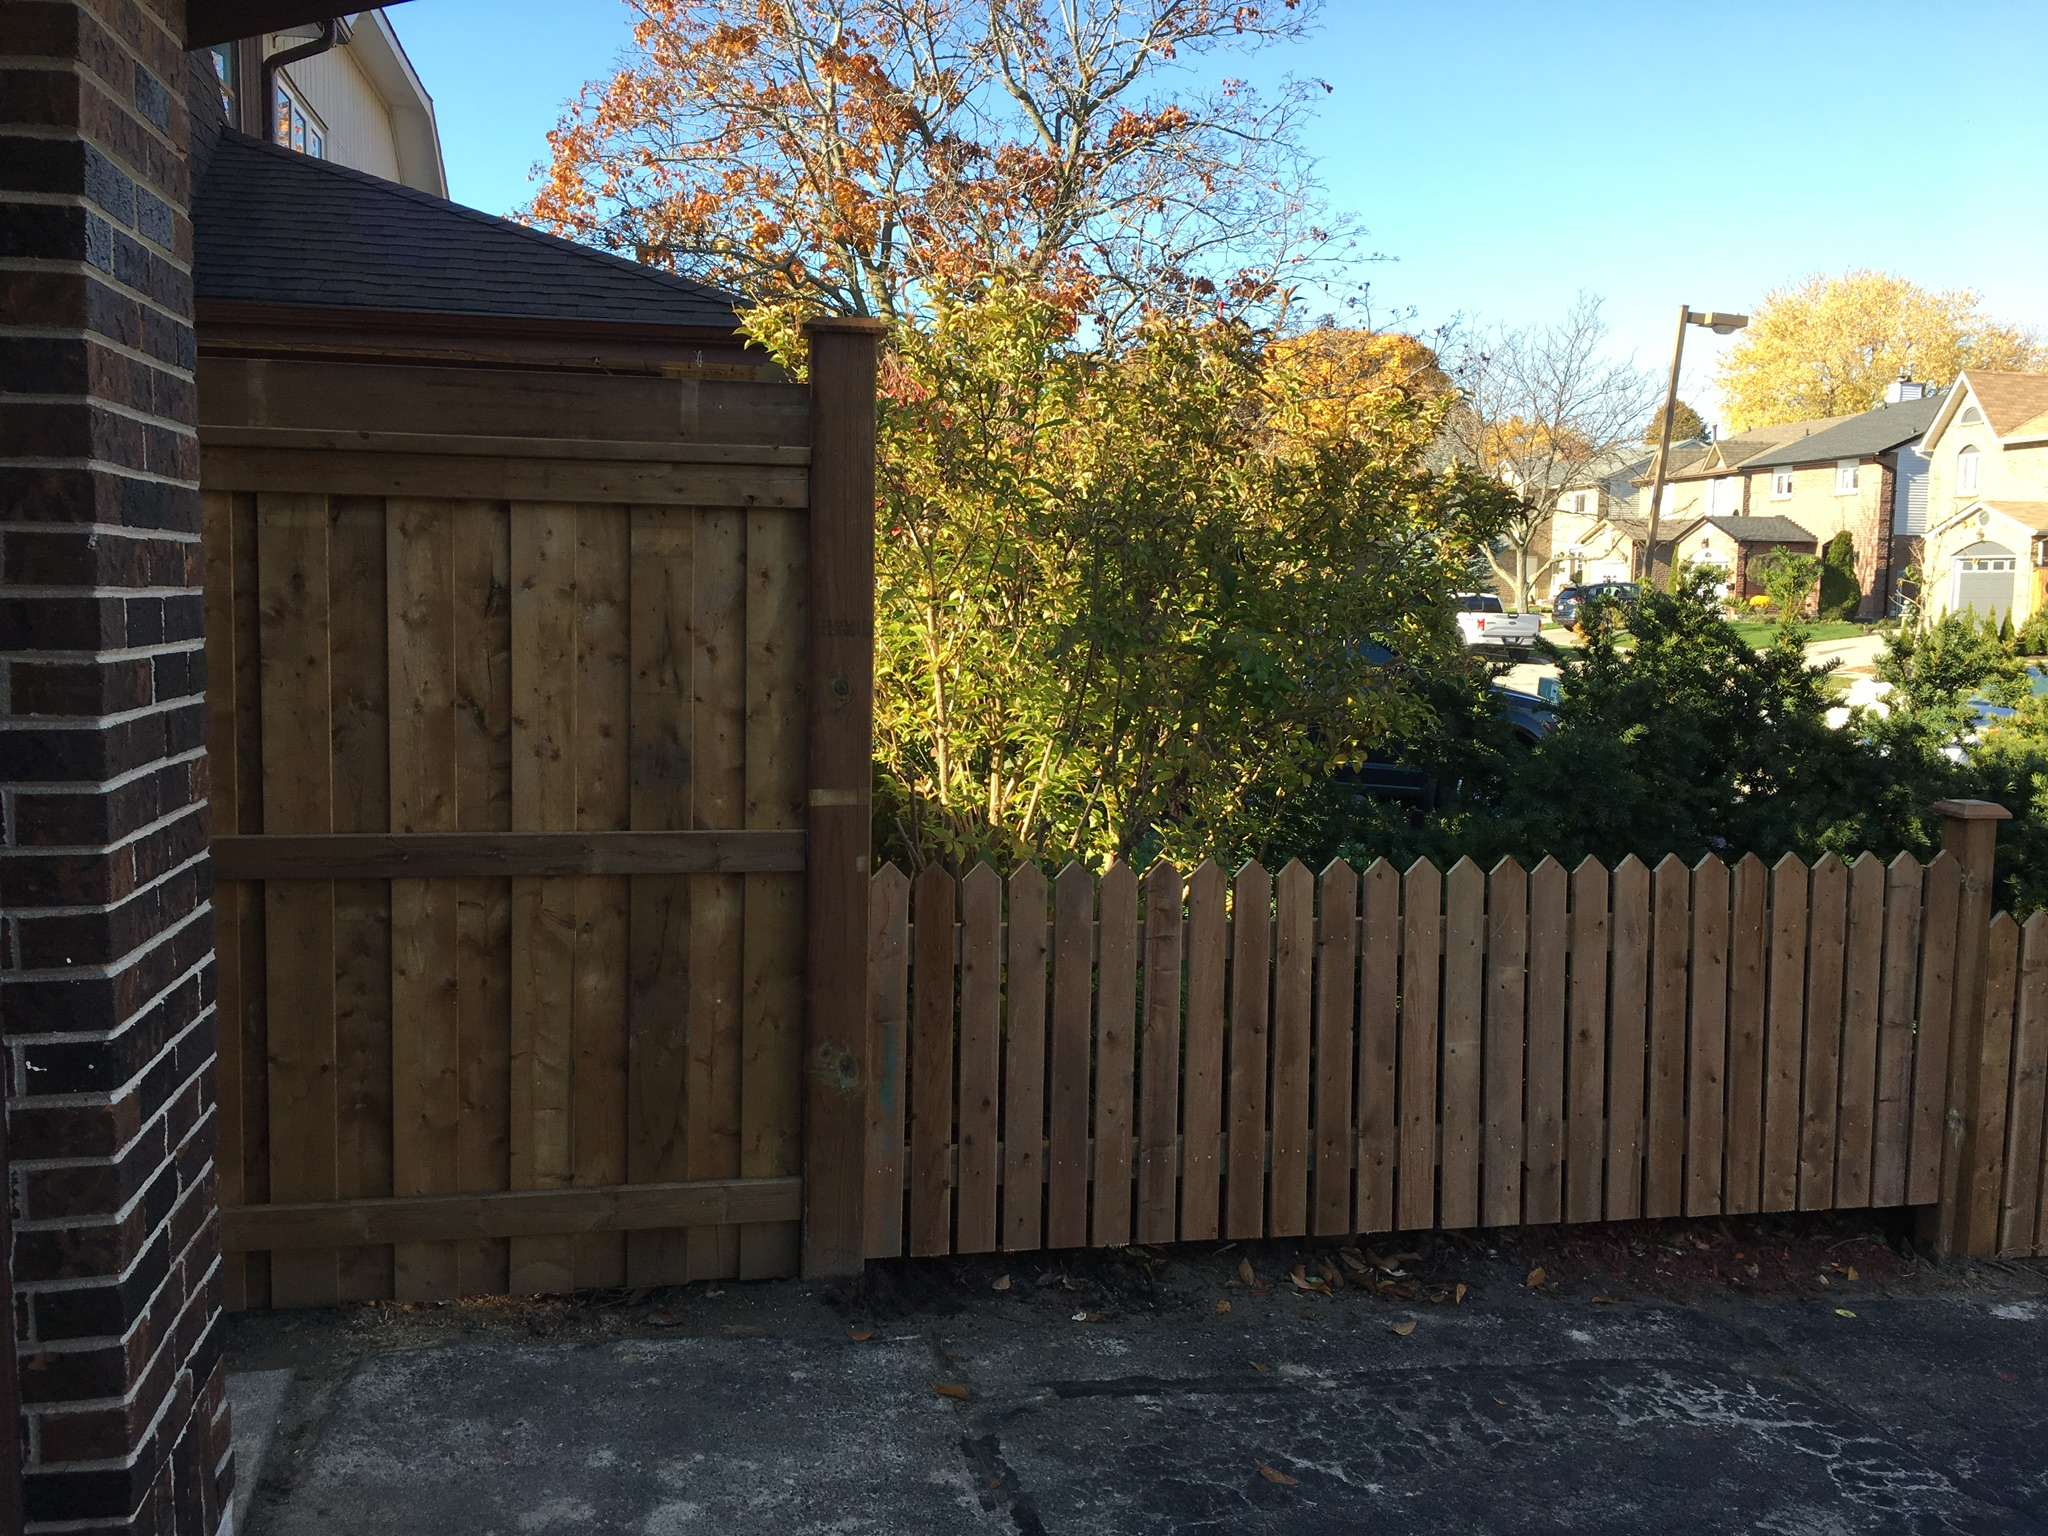 Fences: Privacy fence is one of the most popular choices when investing in fence & deck in Oshawa